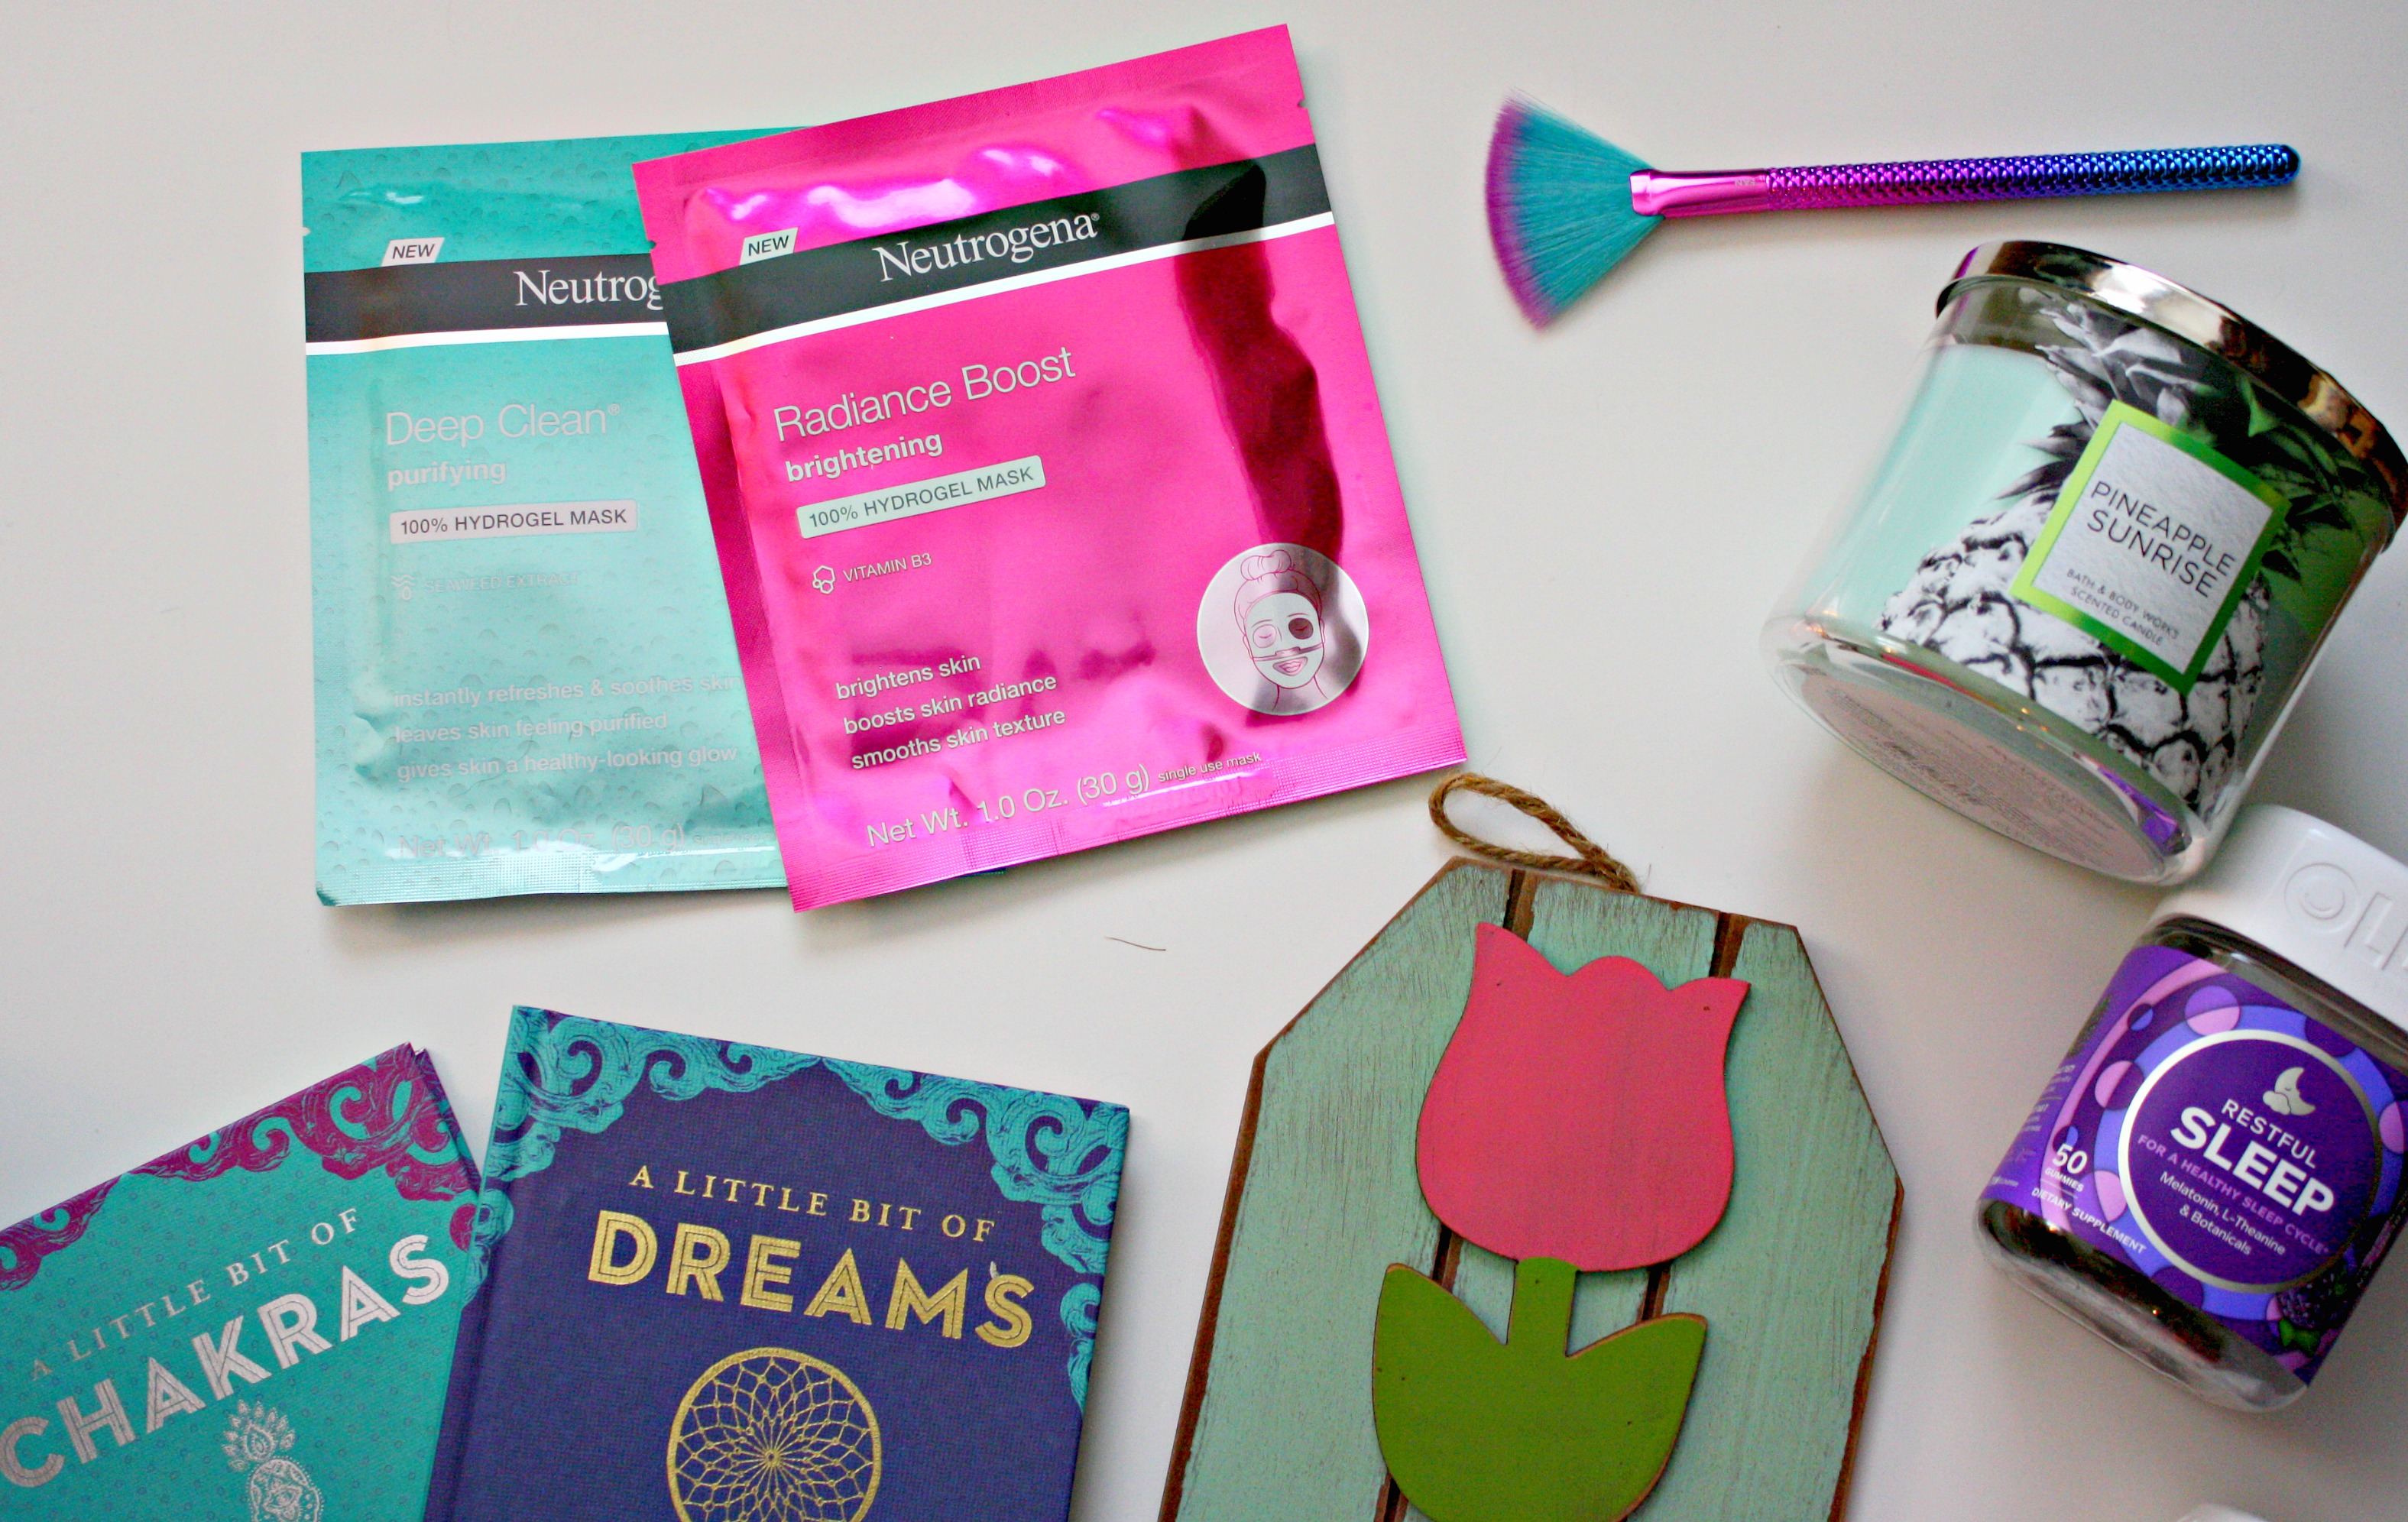 face masks, beauty, makeup, ipsy, spring, vitamins, books